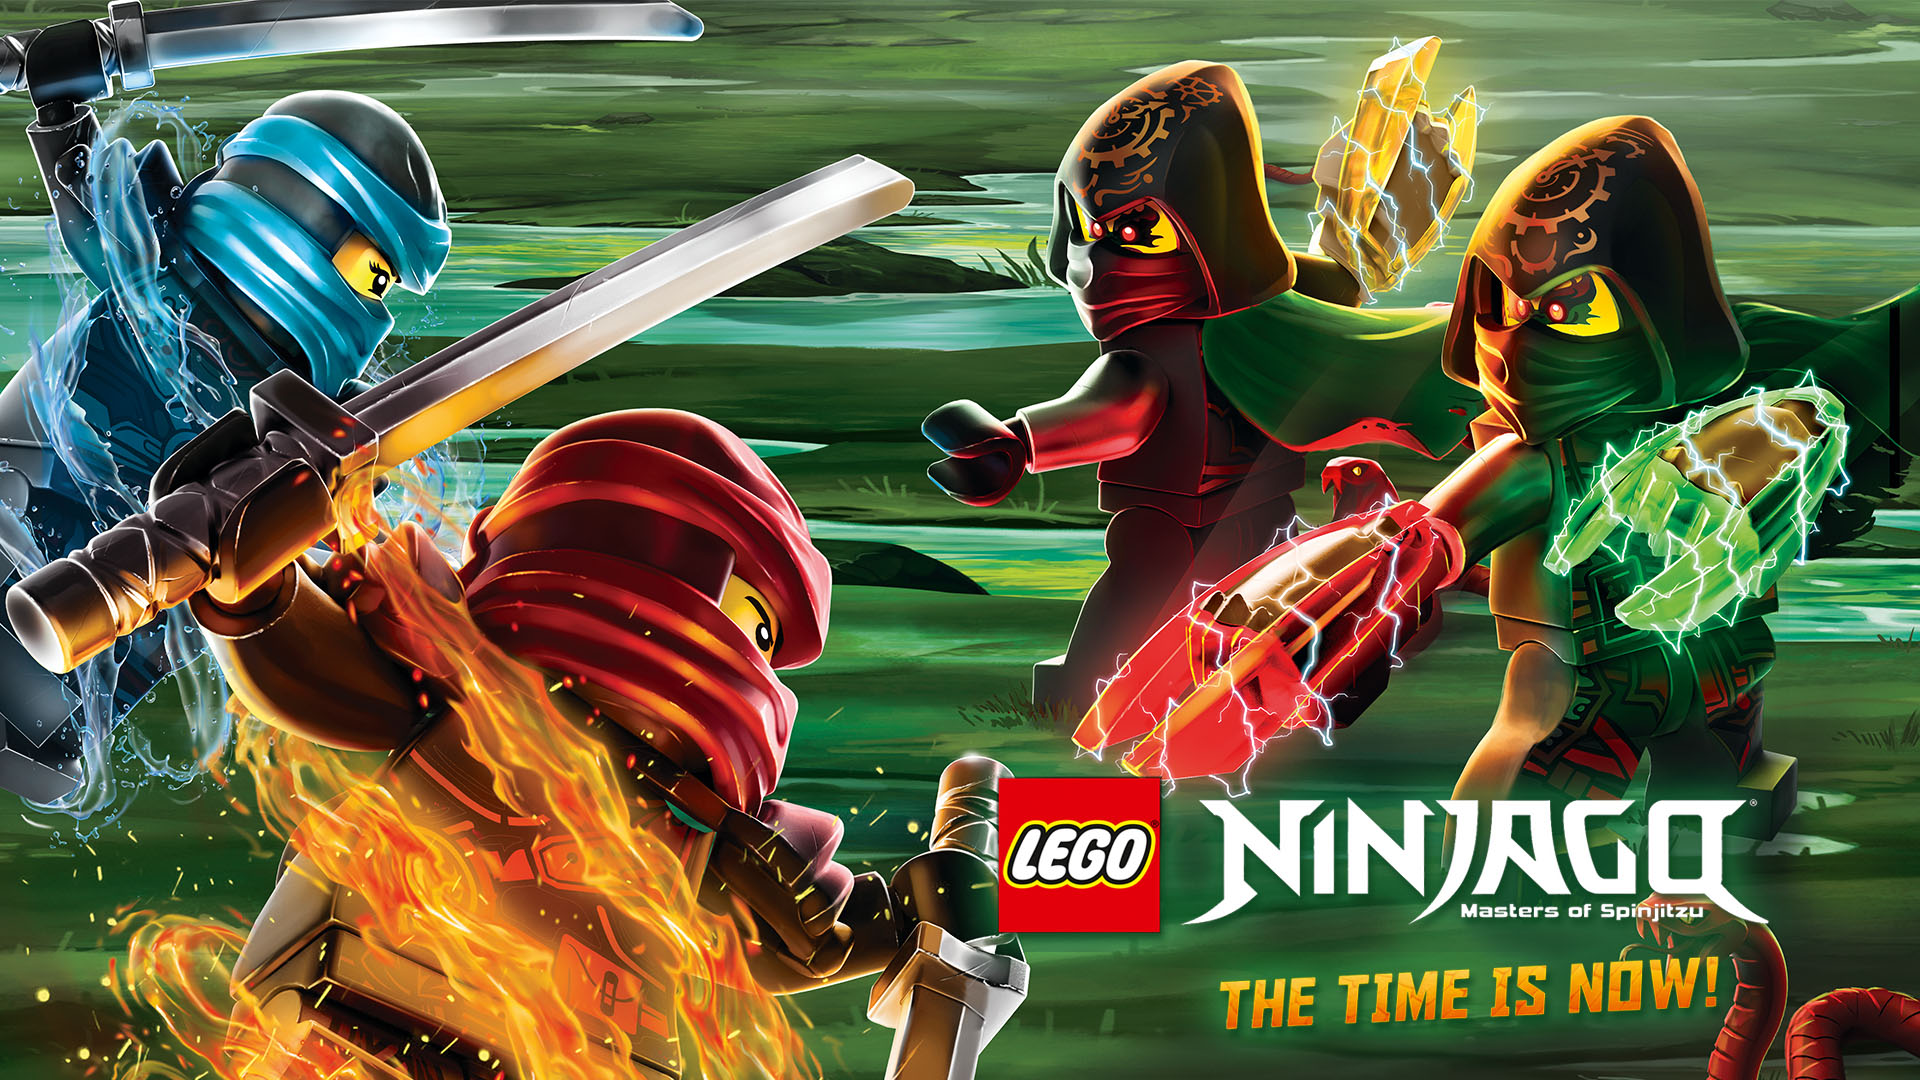 Win tickets to LEGO NINJAGO exclusive screening at BAFTA